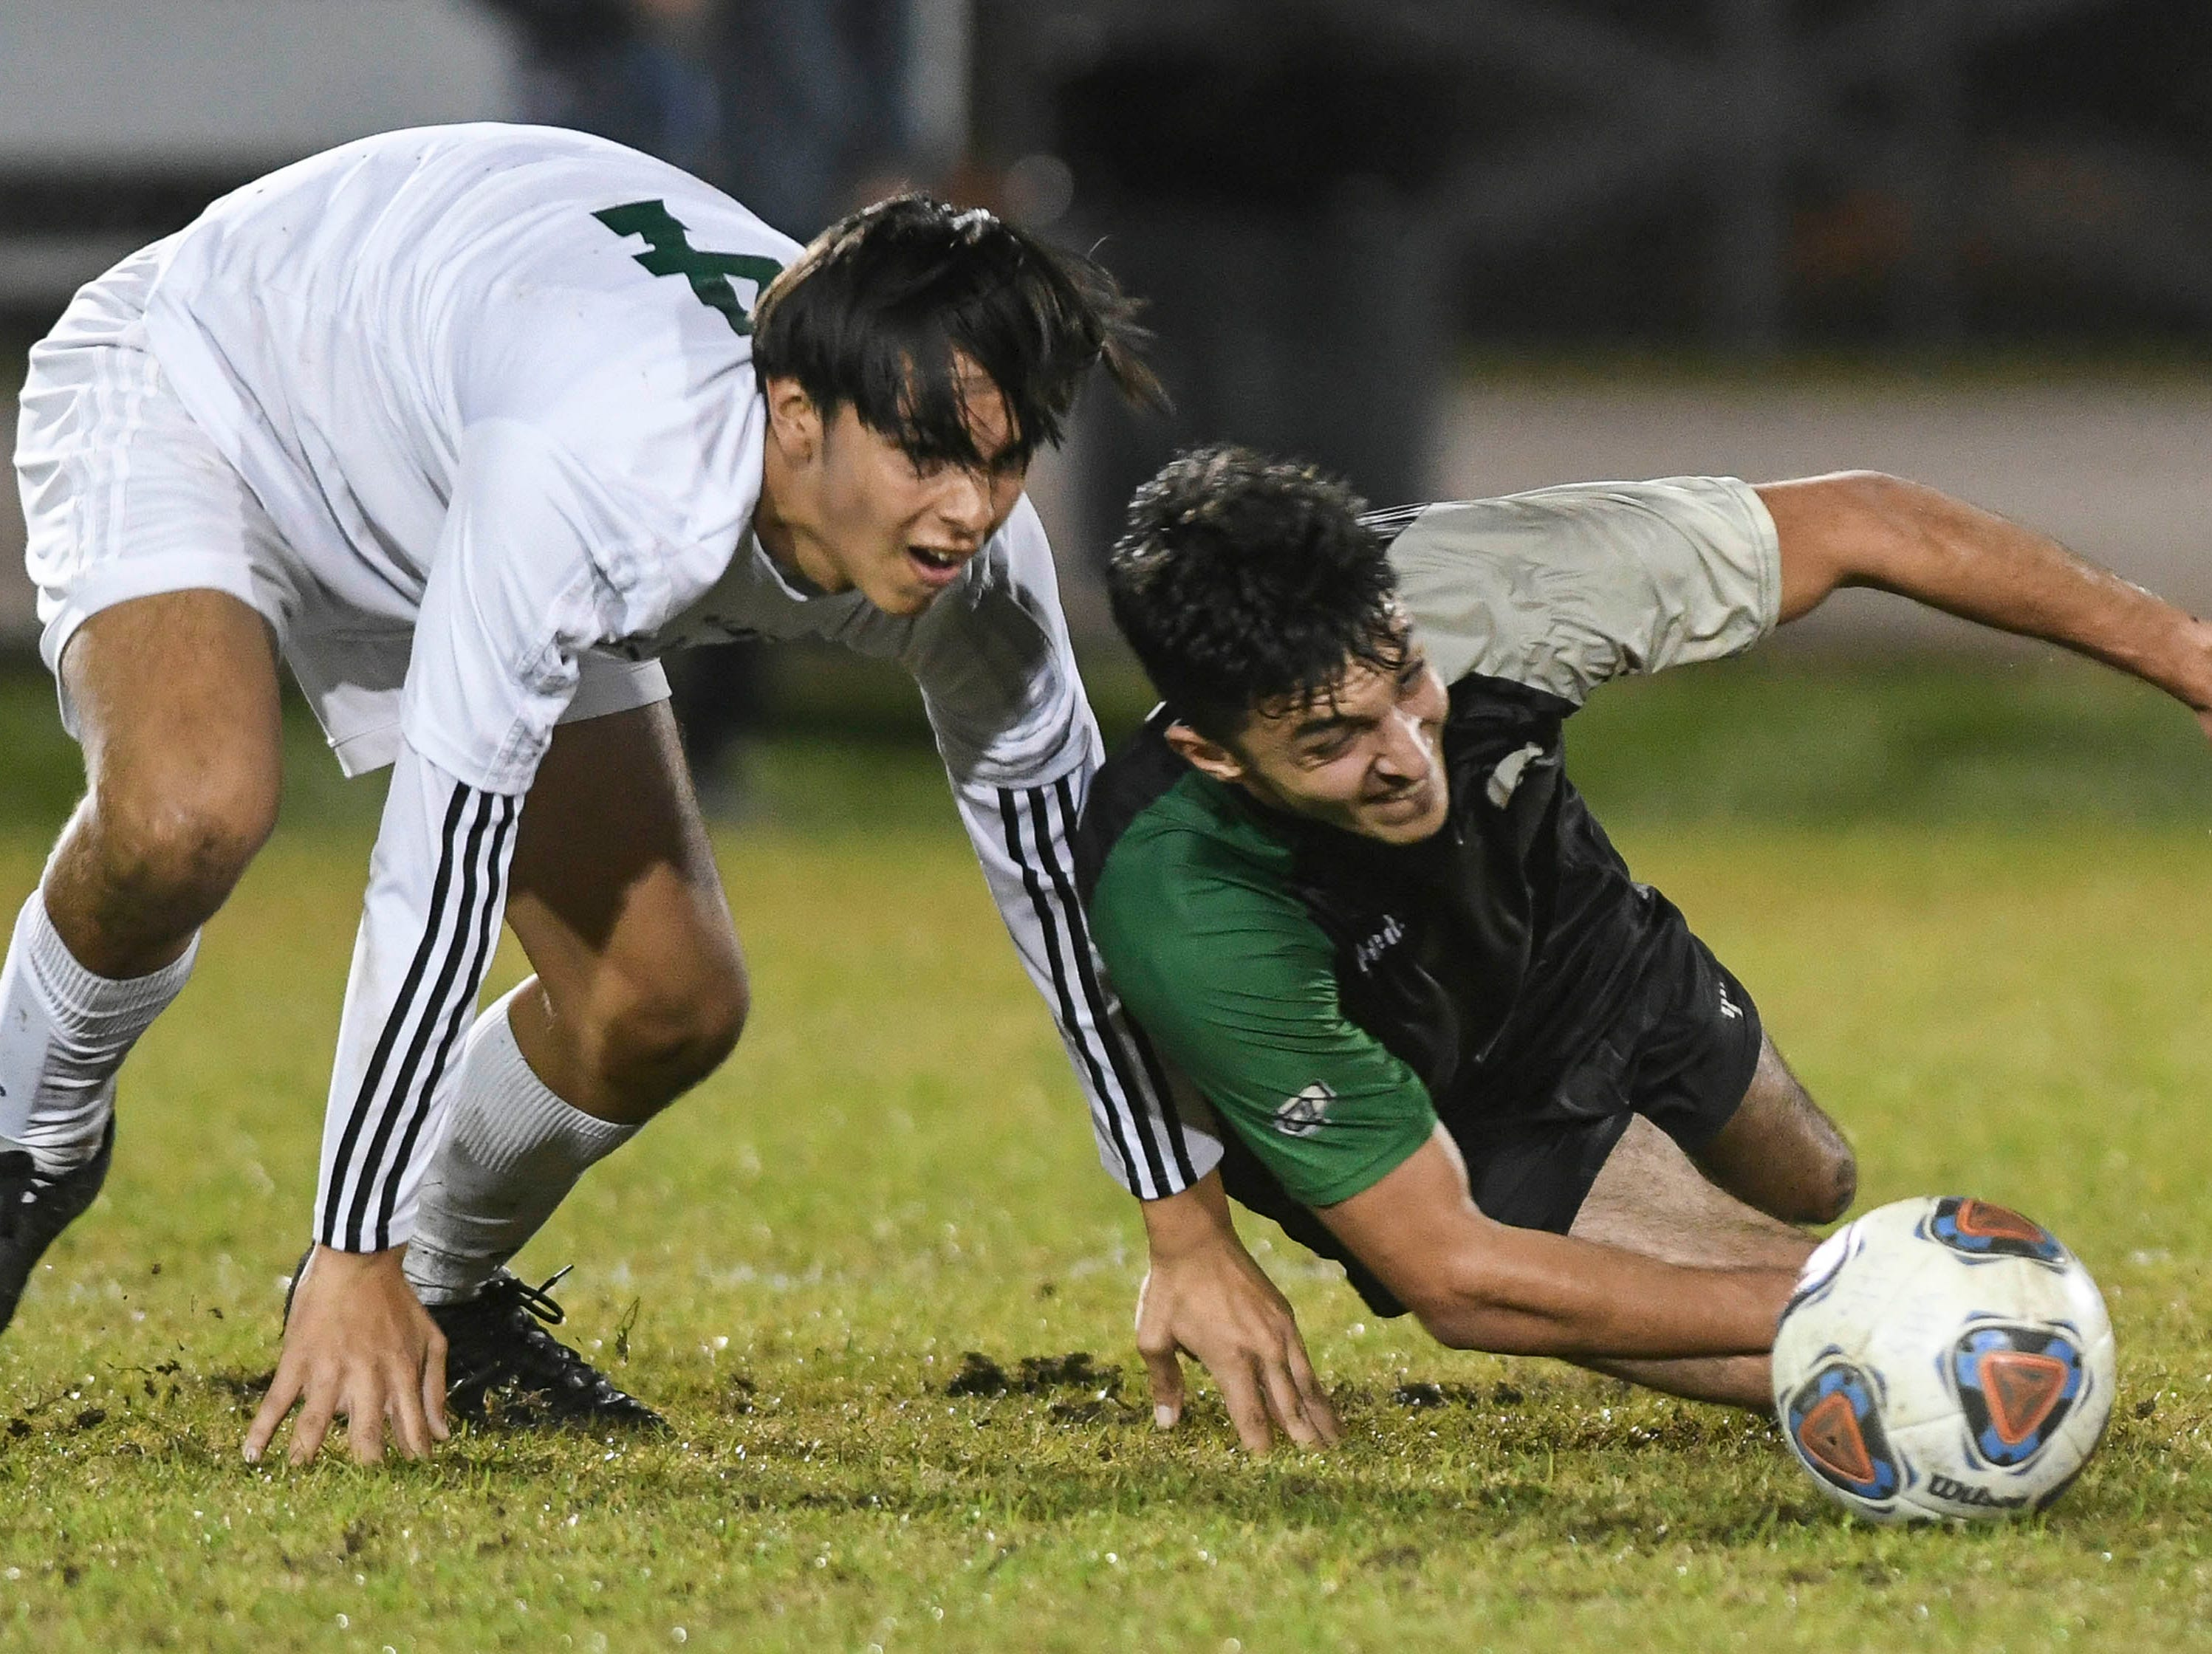 Nick Martinez of Melbourne and Kia Mohajeri of Viera scramble for the ball during Friday at Viera High.'s Class 4A, District 6 championship game.